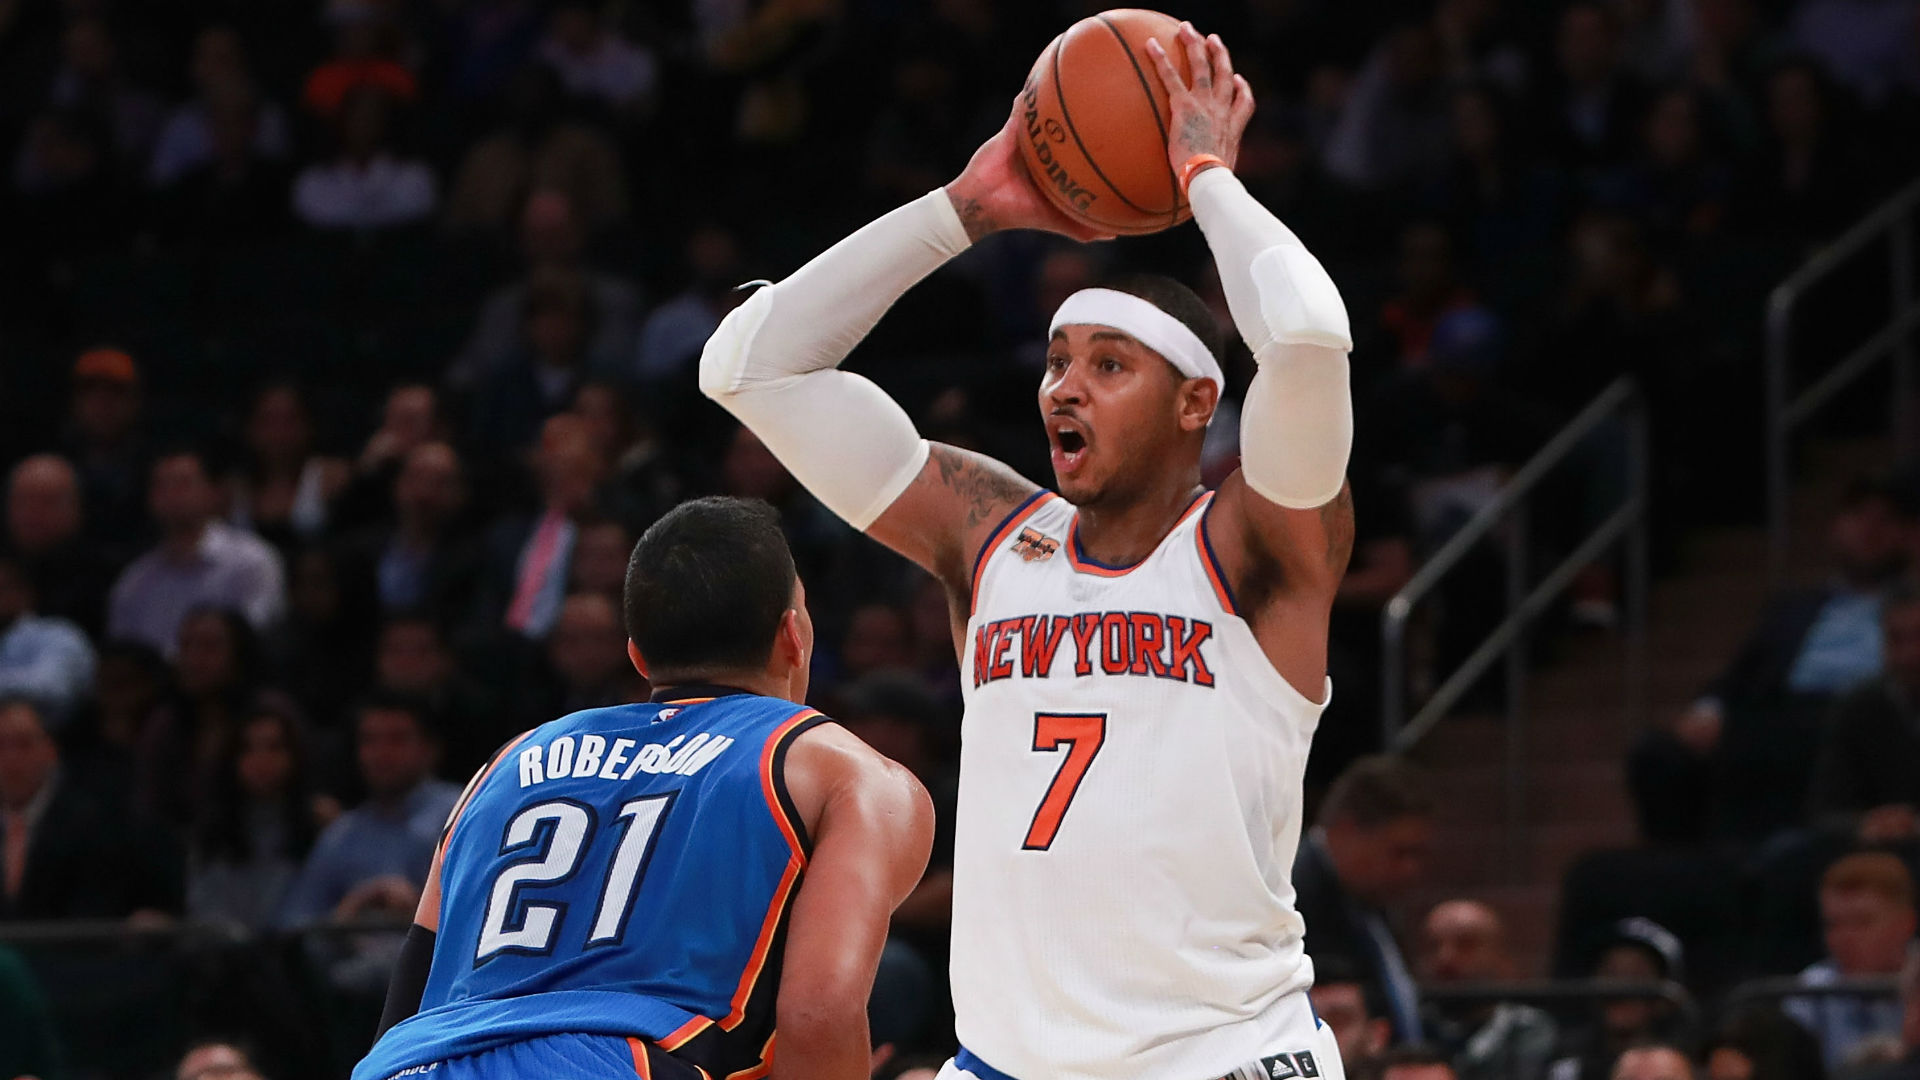 Rumor: Knicks likely to trade Carmelo Anthony to Rockets this week